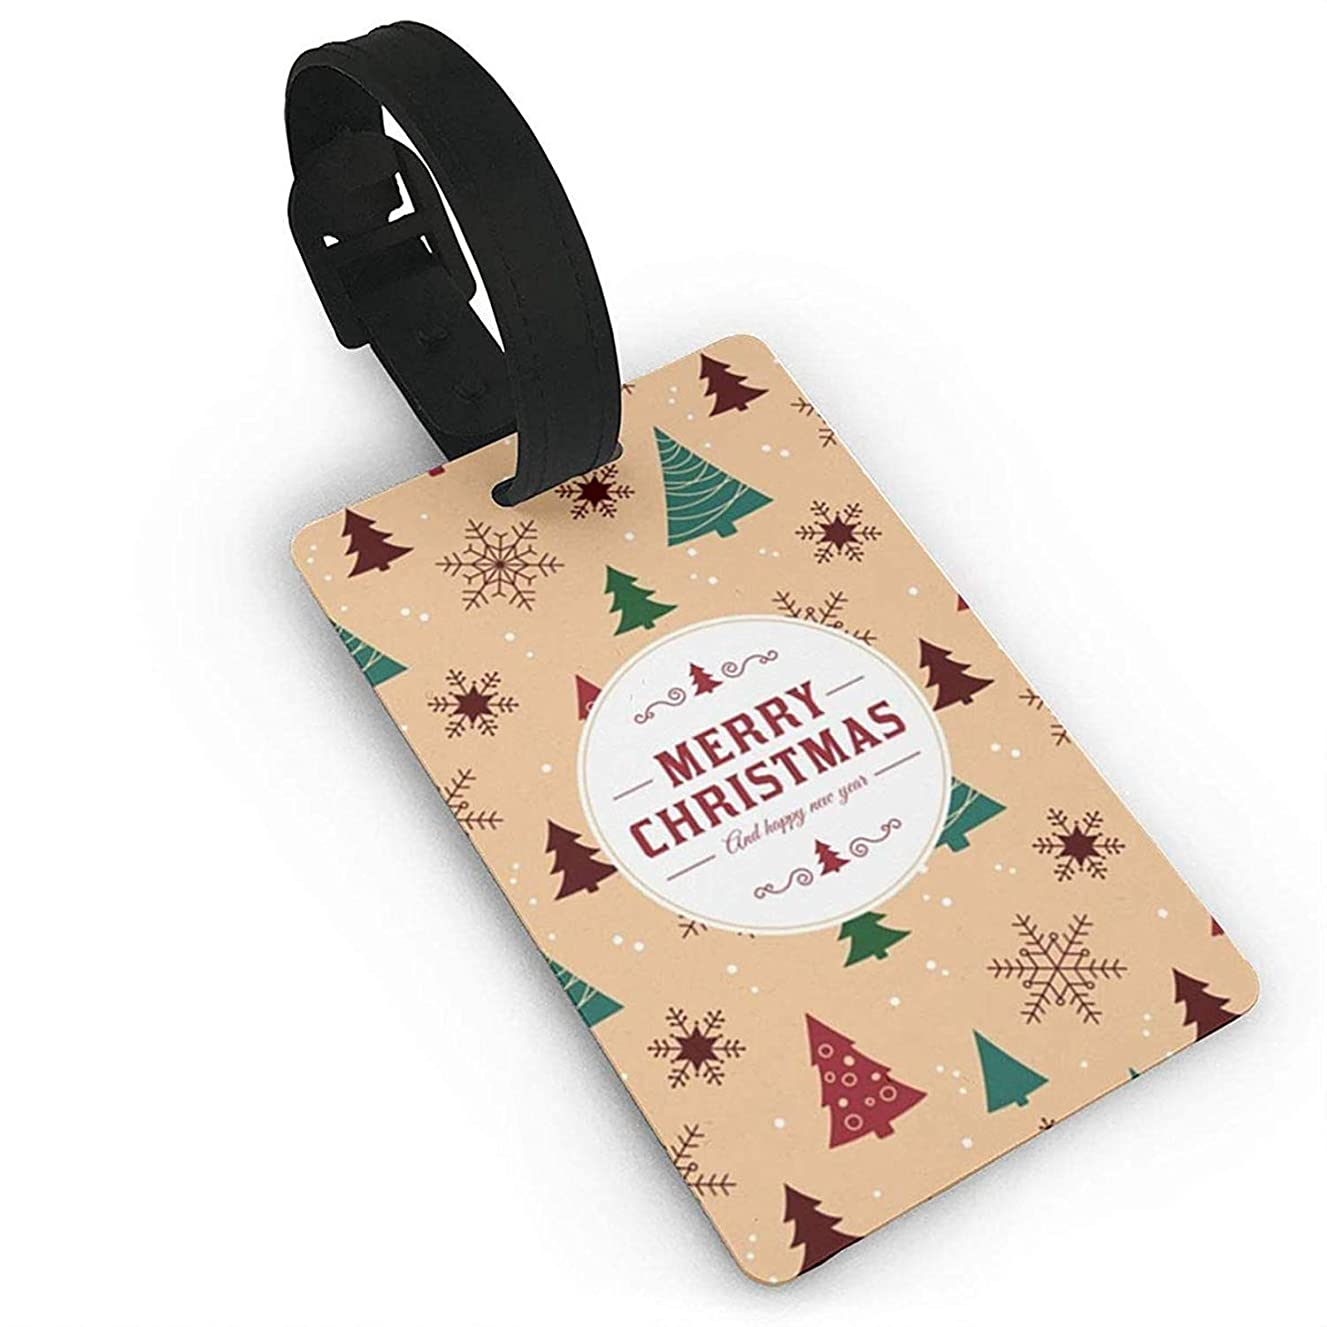 HappyToiletLidCoverX Luggage Tags Holders for Travel Luggage, Merry Christmas Snowflake Tree Background Plastic PVC Luggage Tags Suitcase Labels Travel Bag ID Tags Size 2.2 X 3.7 inches